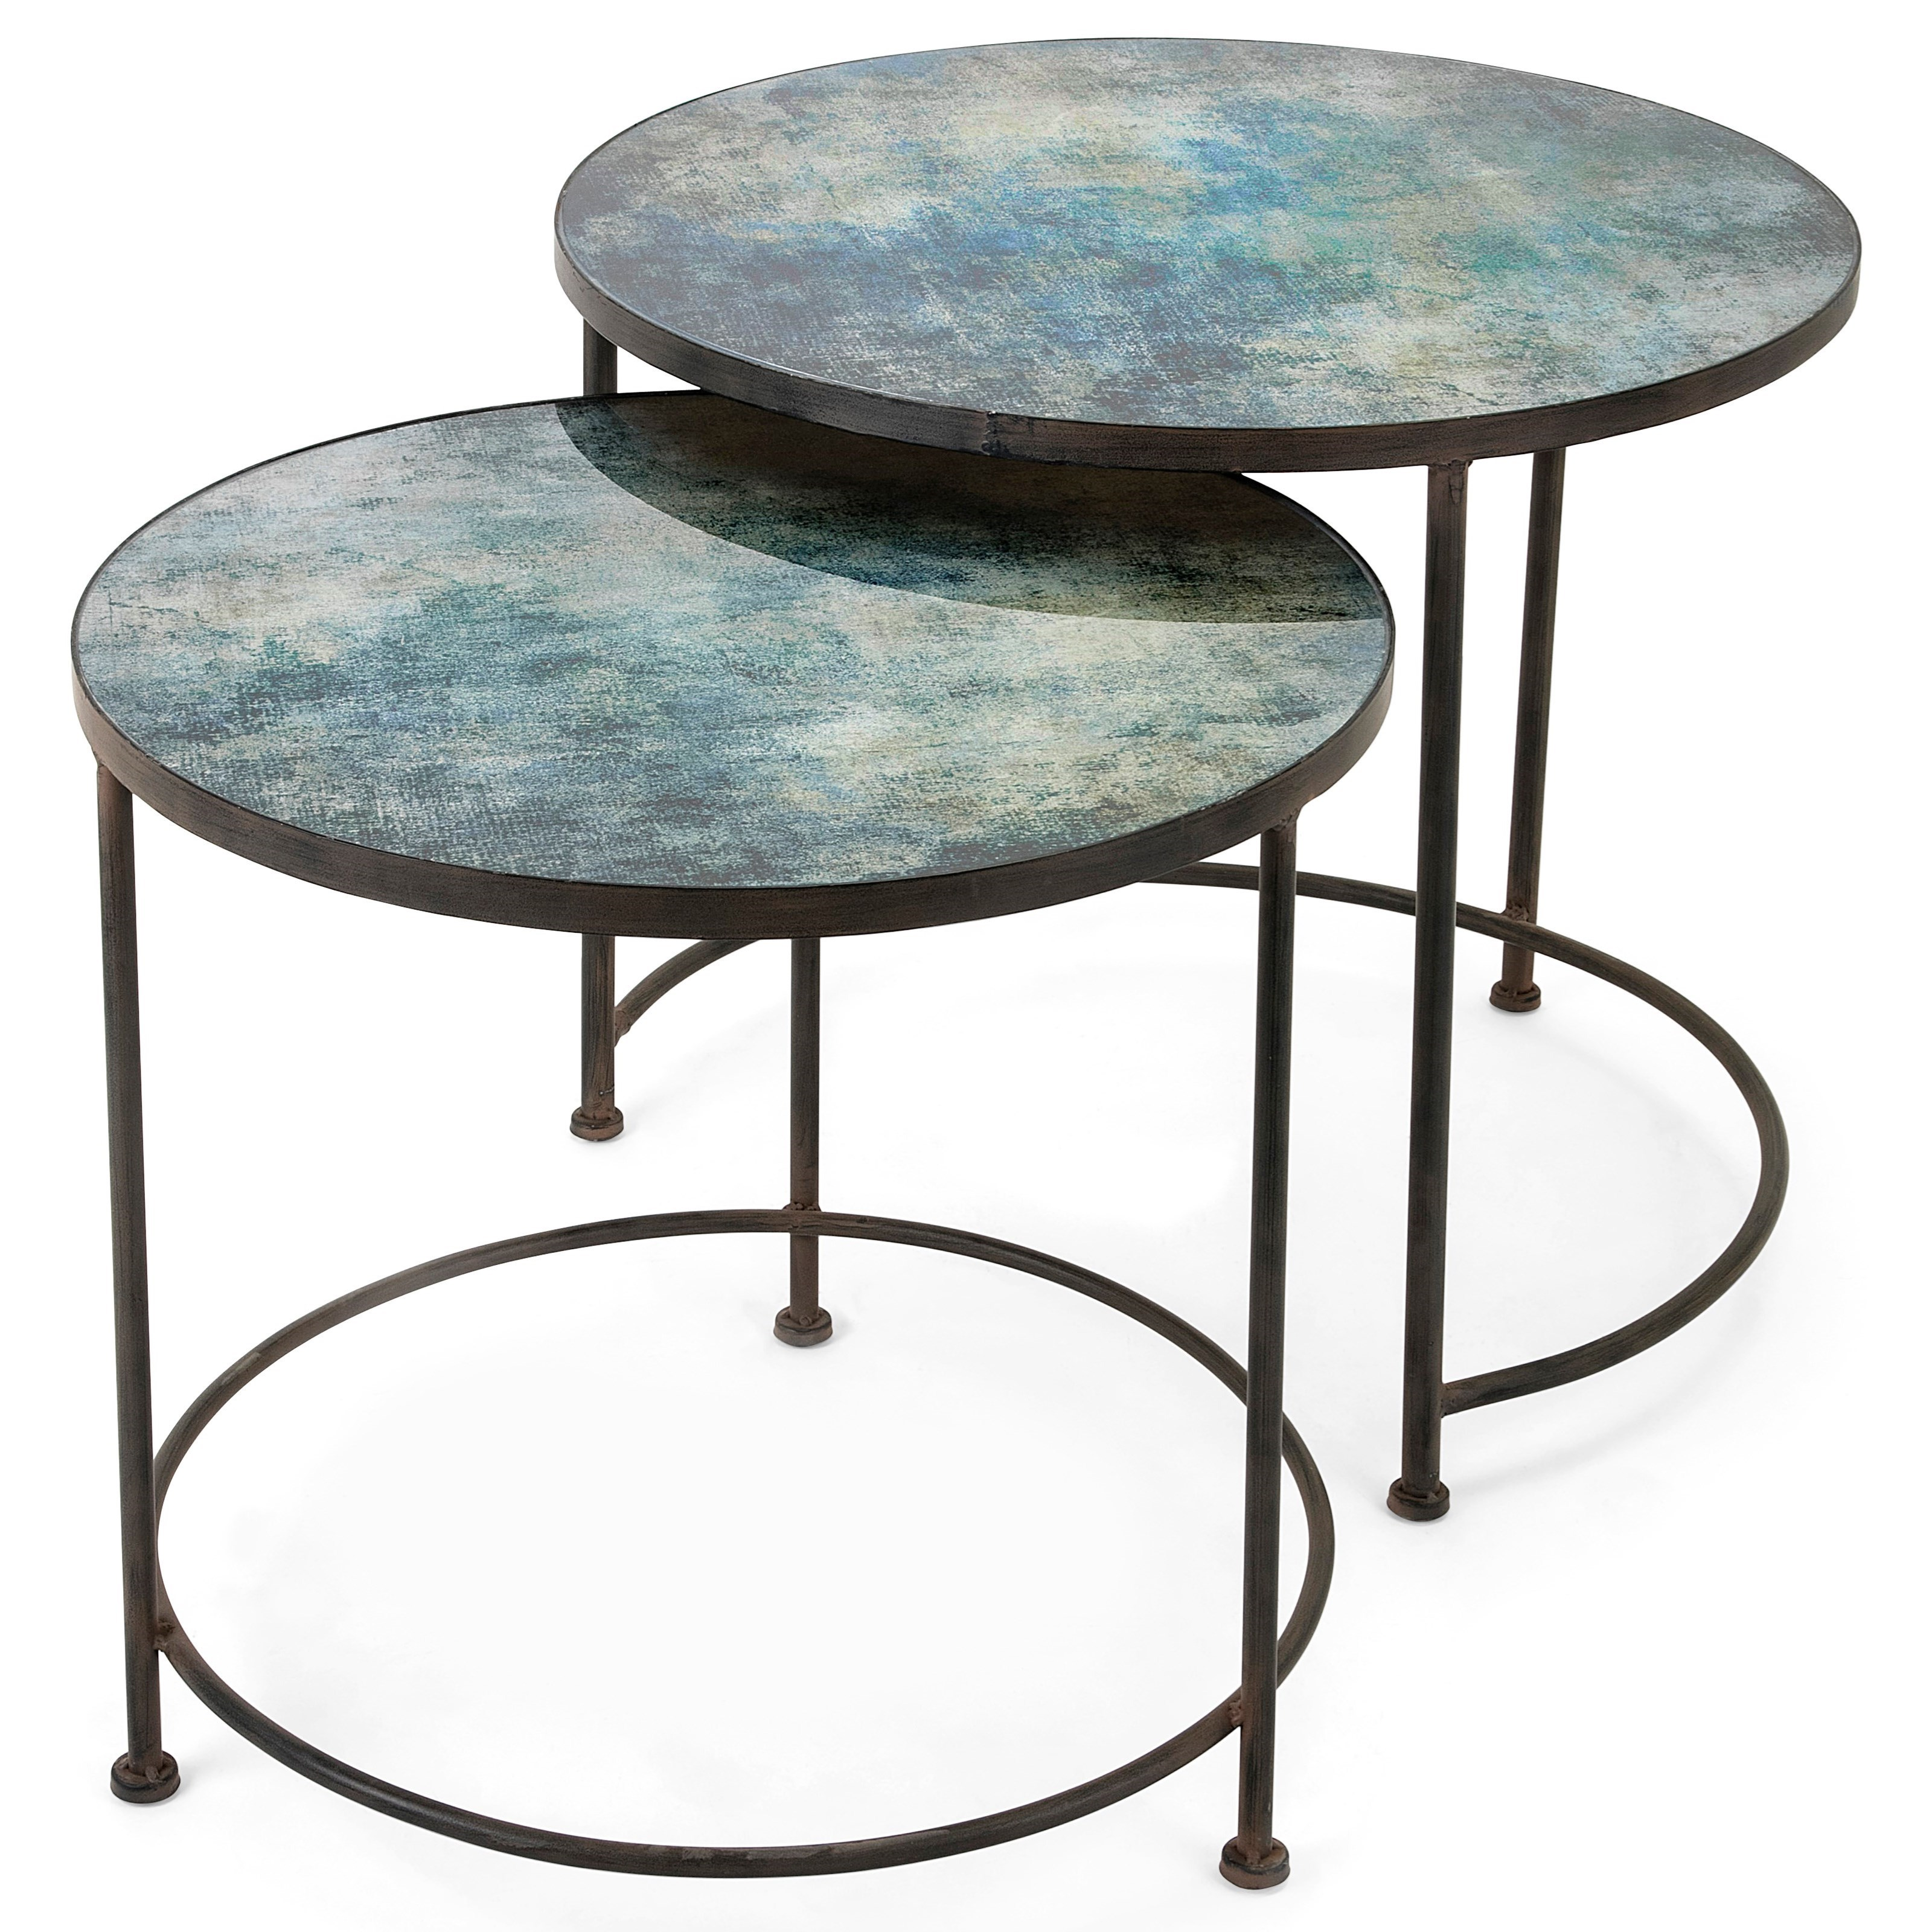 Paxton Metal and Printed Glass Tables - Set